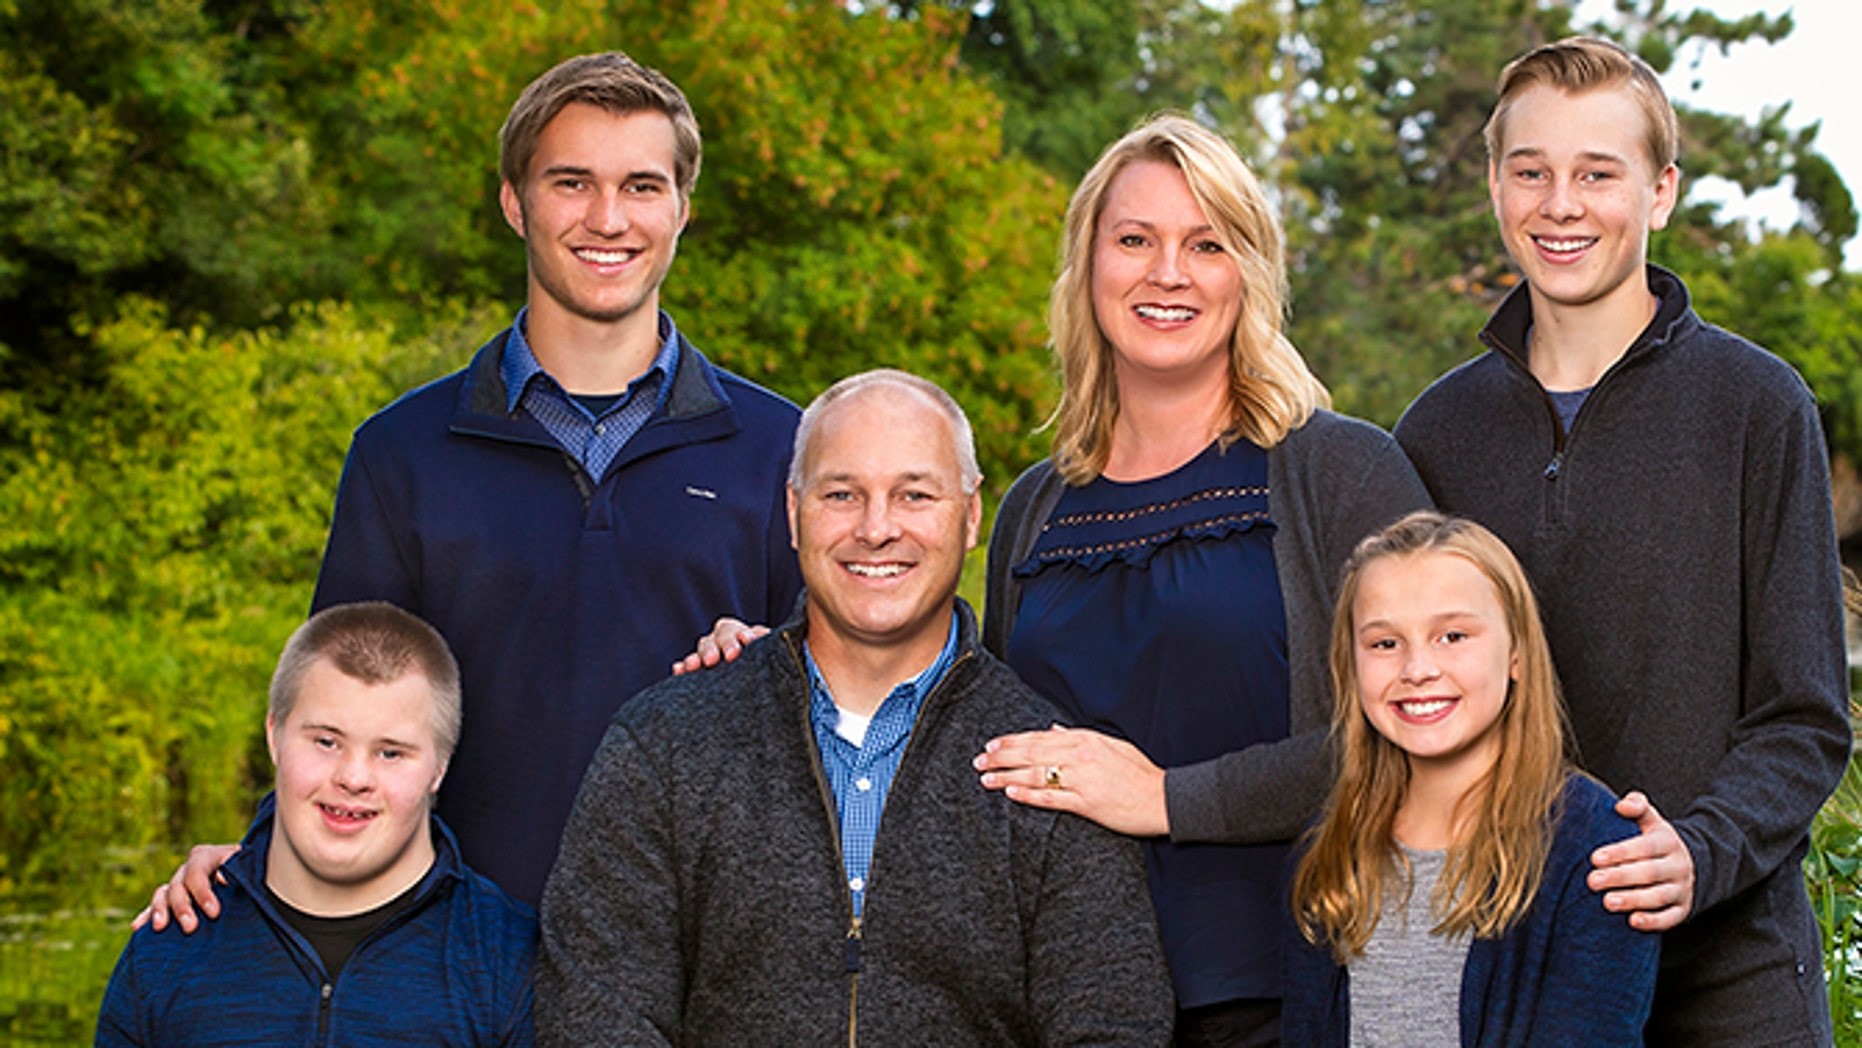 Pete Stauber and his wife Jodi with their four children; Levi, Luke, Isaac and Addilyn.